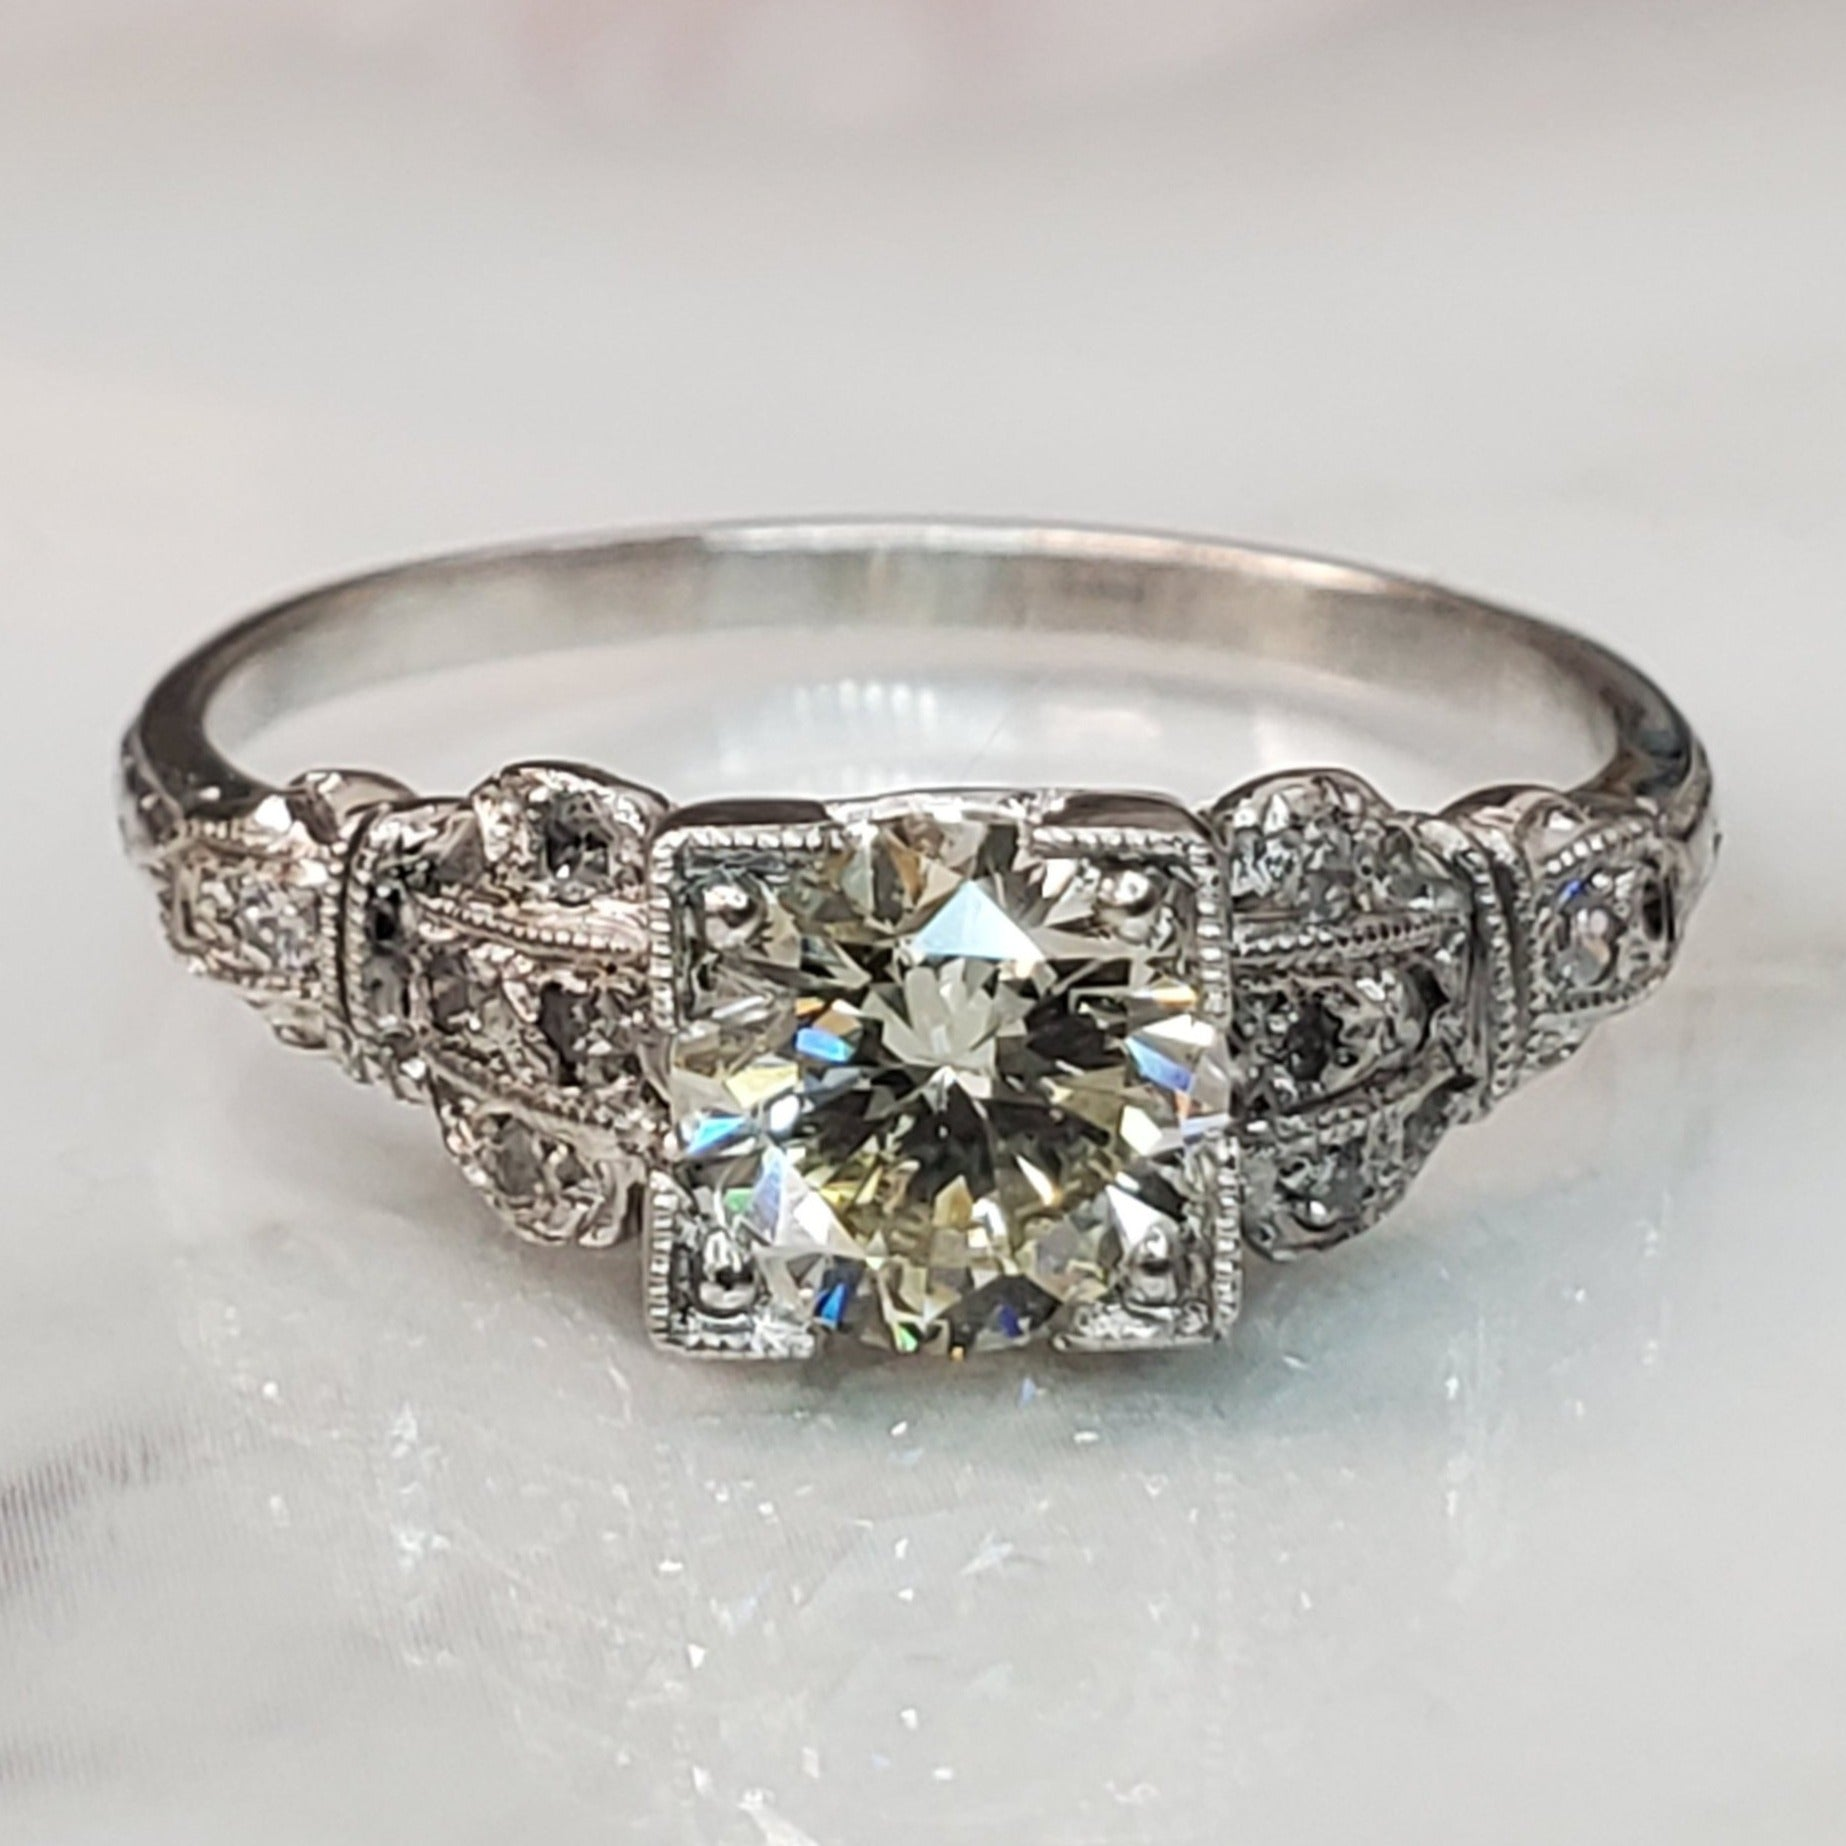 Platinum, 0.91 carat, round brilliant diamond, diamond accent, vintage ring